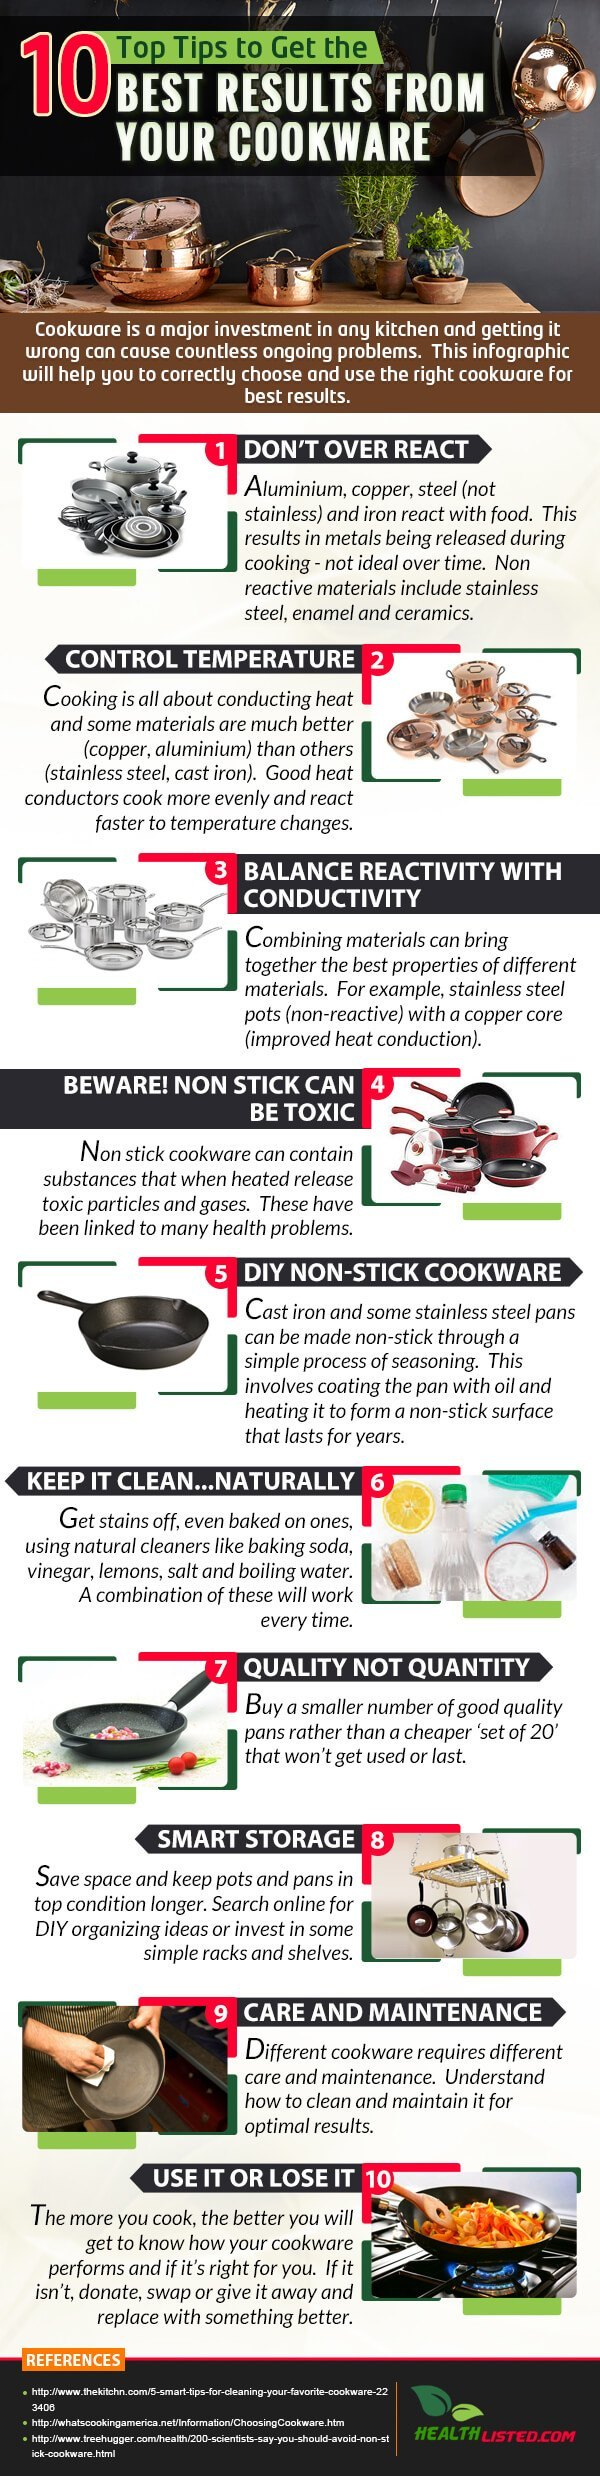 10_Top-Tips-to_Get_Best_Results_from_your_Cookware